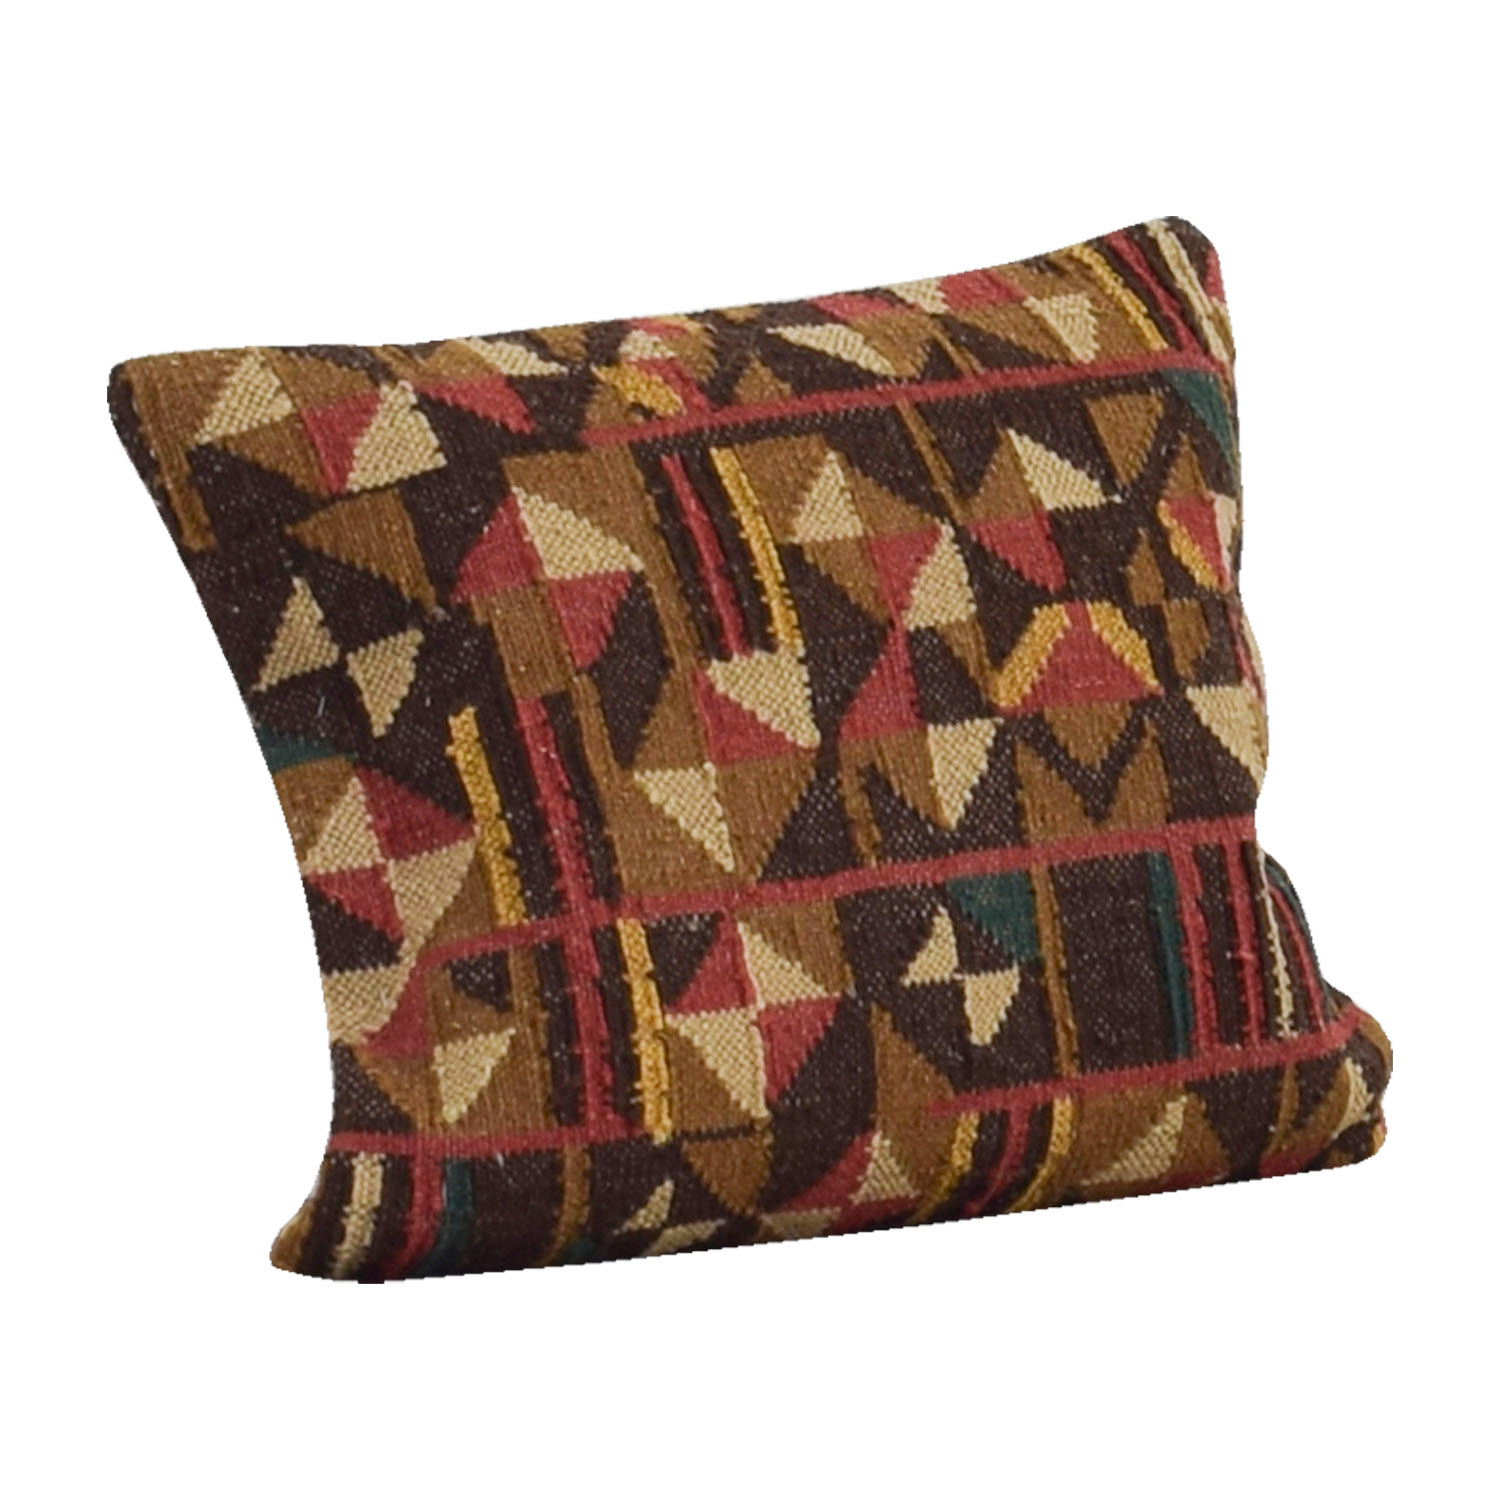 Obeetee Obeetee Brown Red and Beige Textual Toss Pillow price